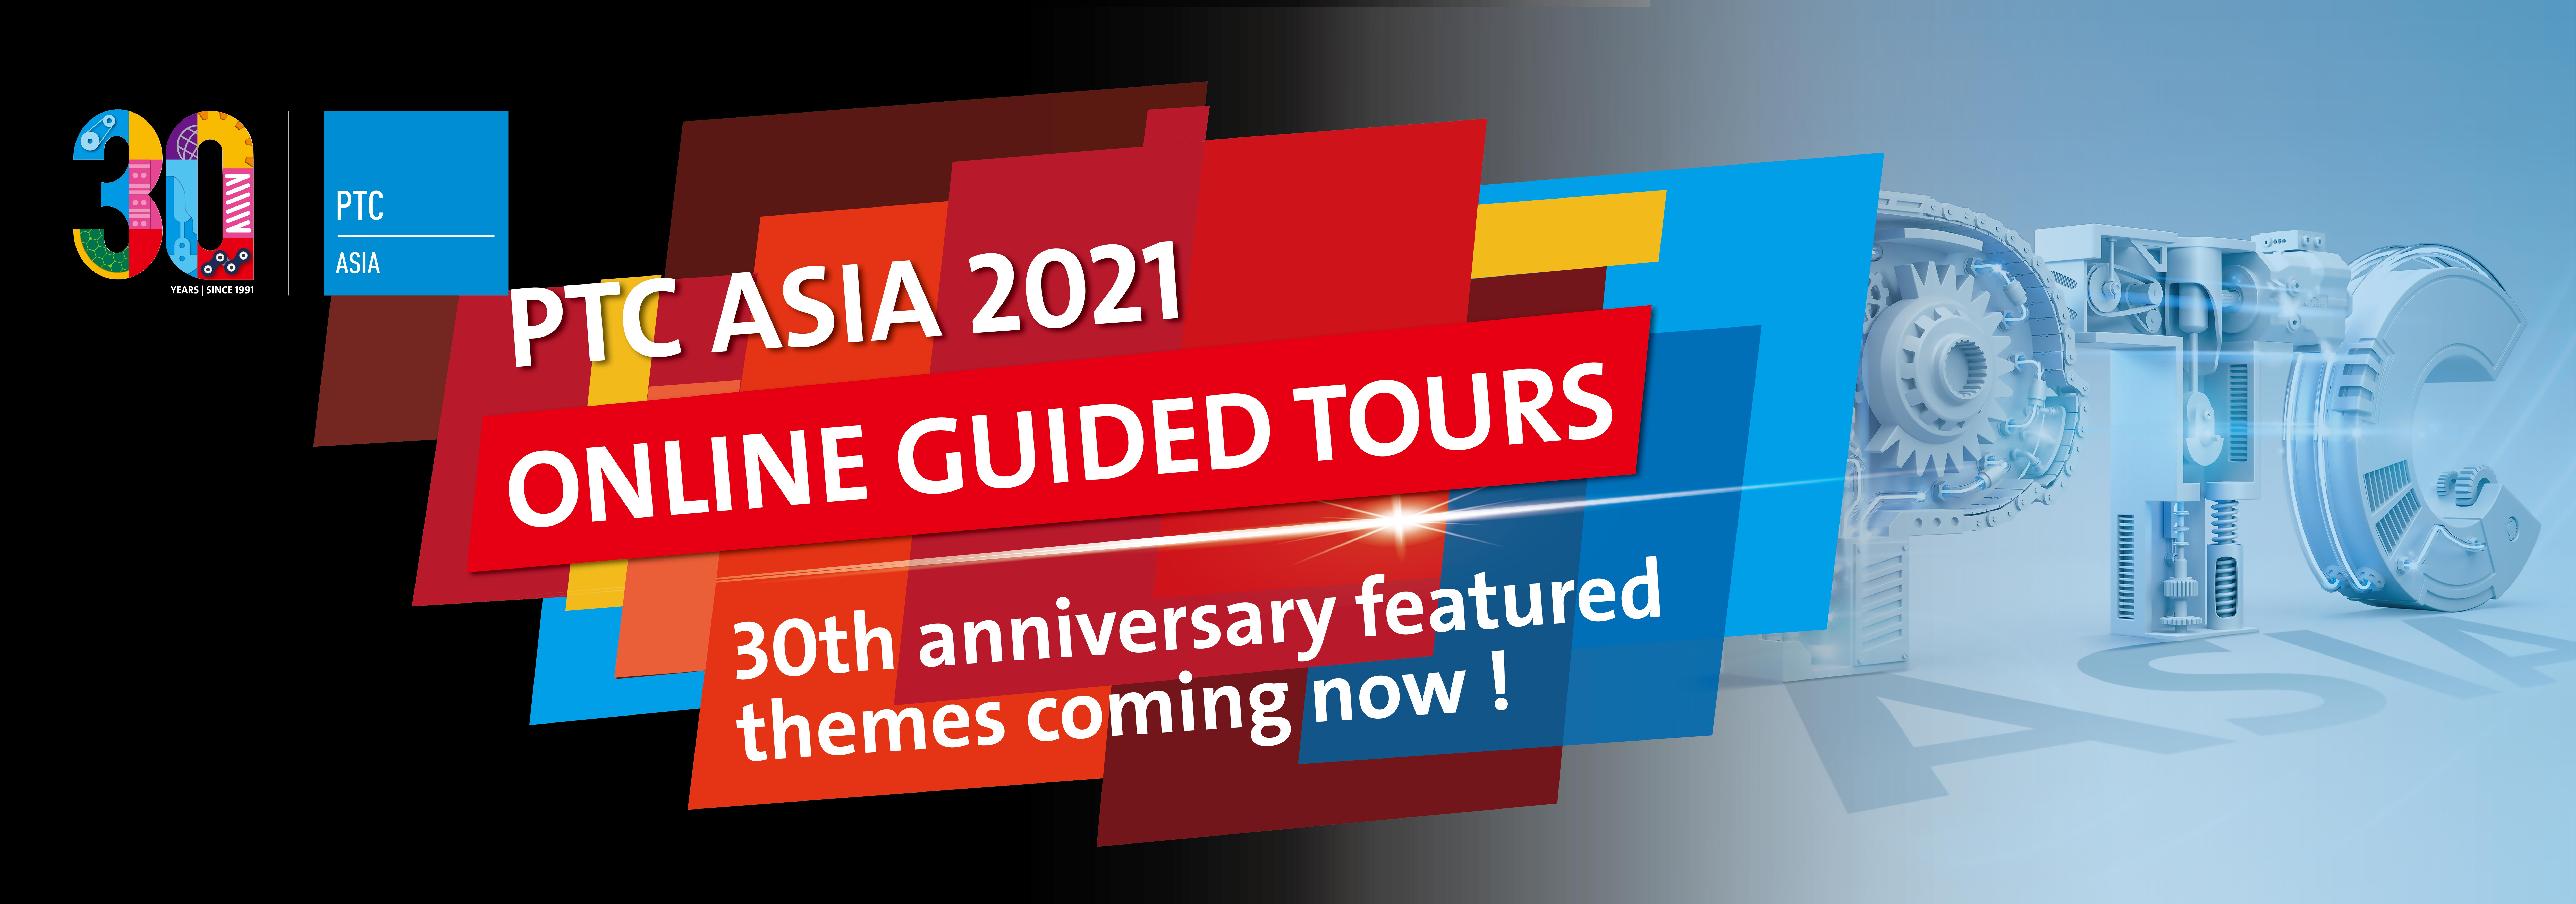 ONLINE GUIDED TOURS